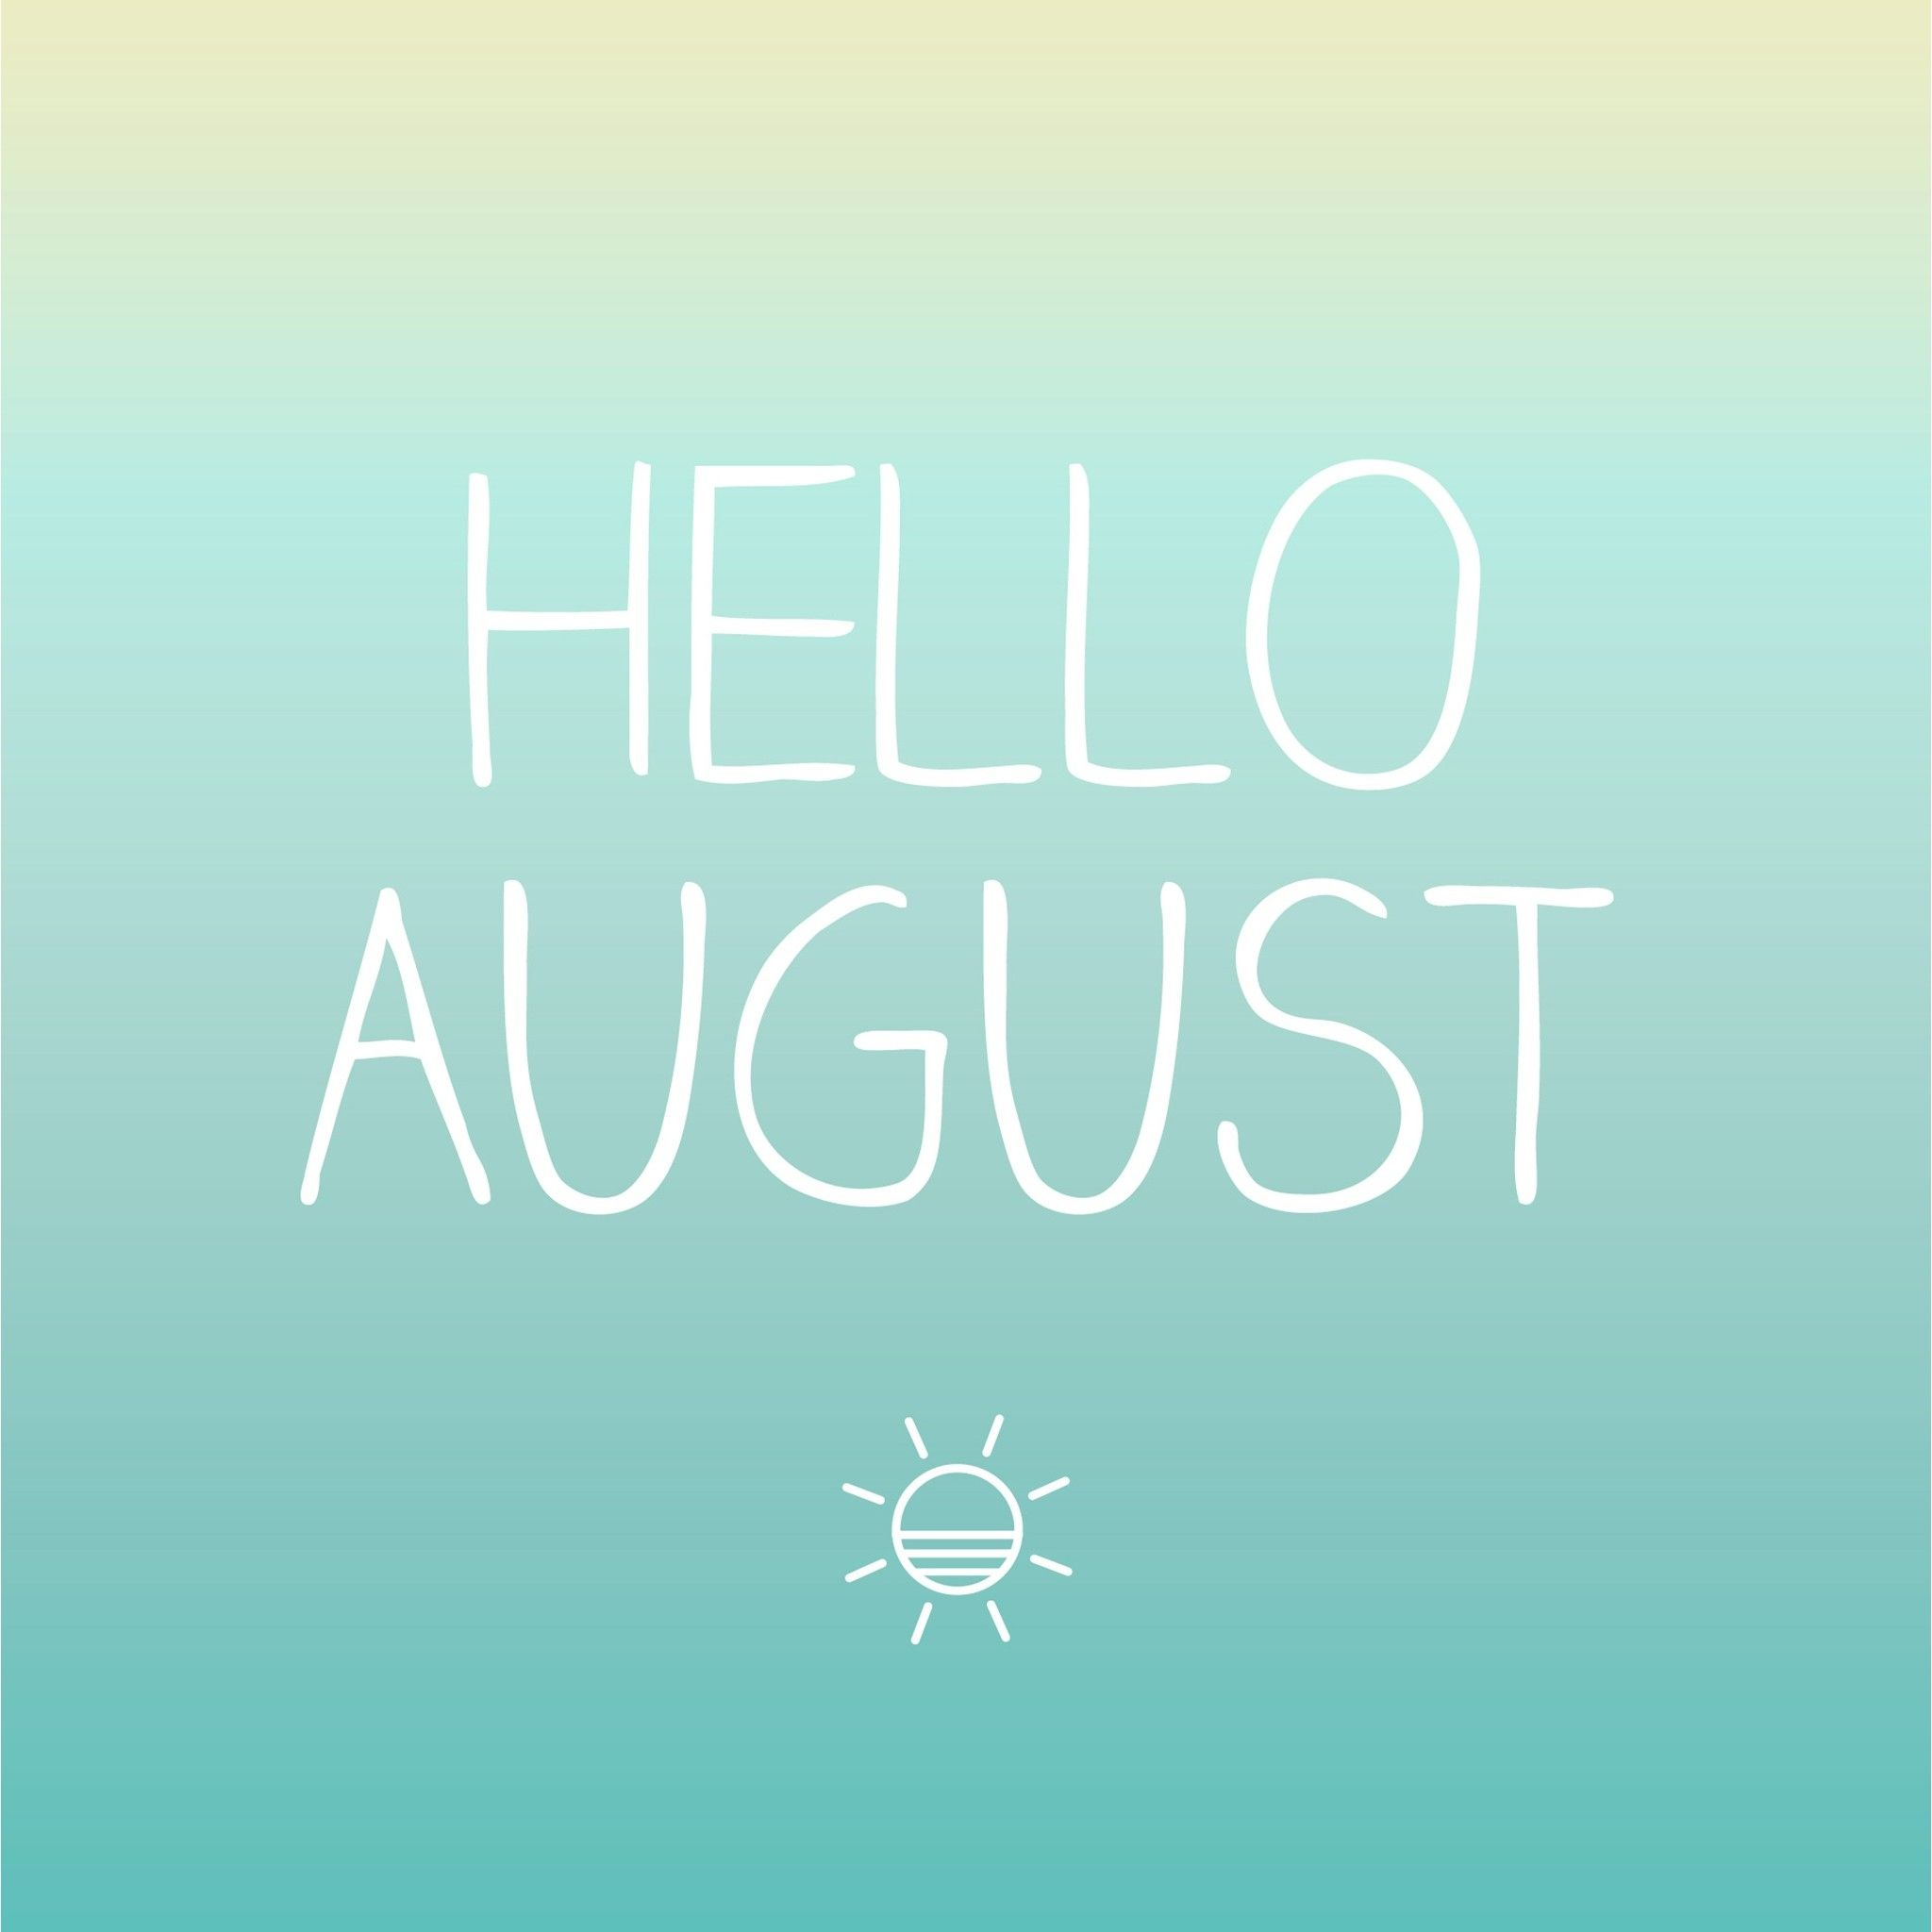 Hello August   Tap to see more August wallpapers mobile9 2048x2048